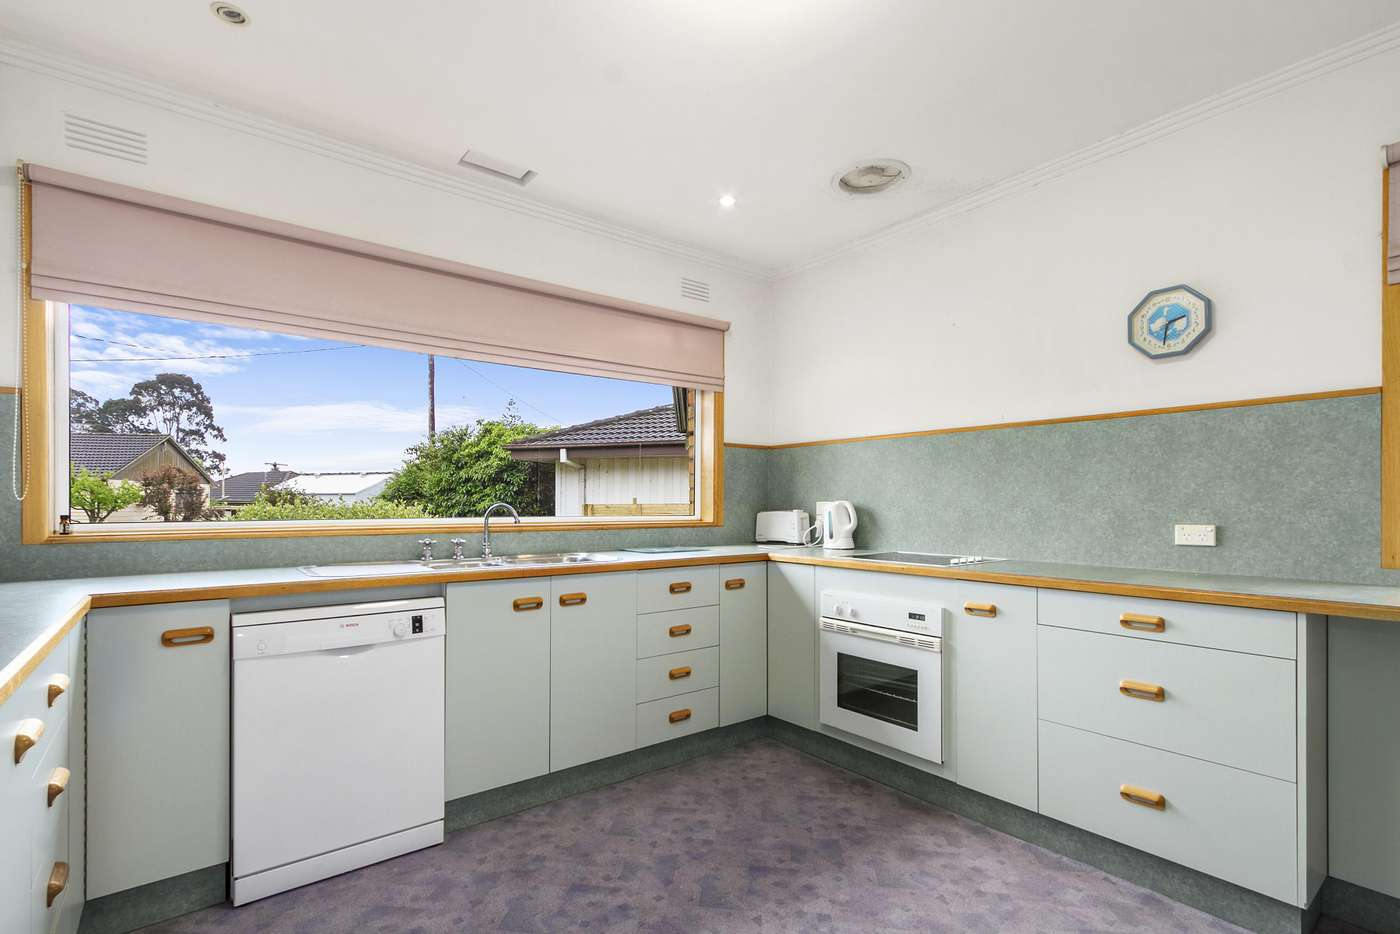 Sixth view of Homely house listing, 76 Wallace St, Morwell VIC 3840